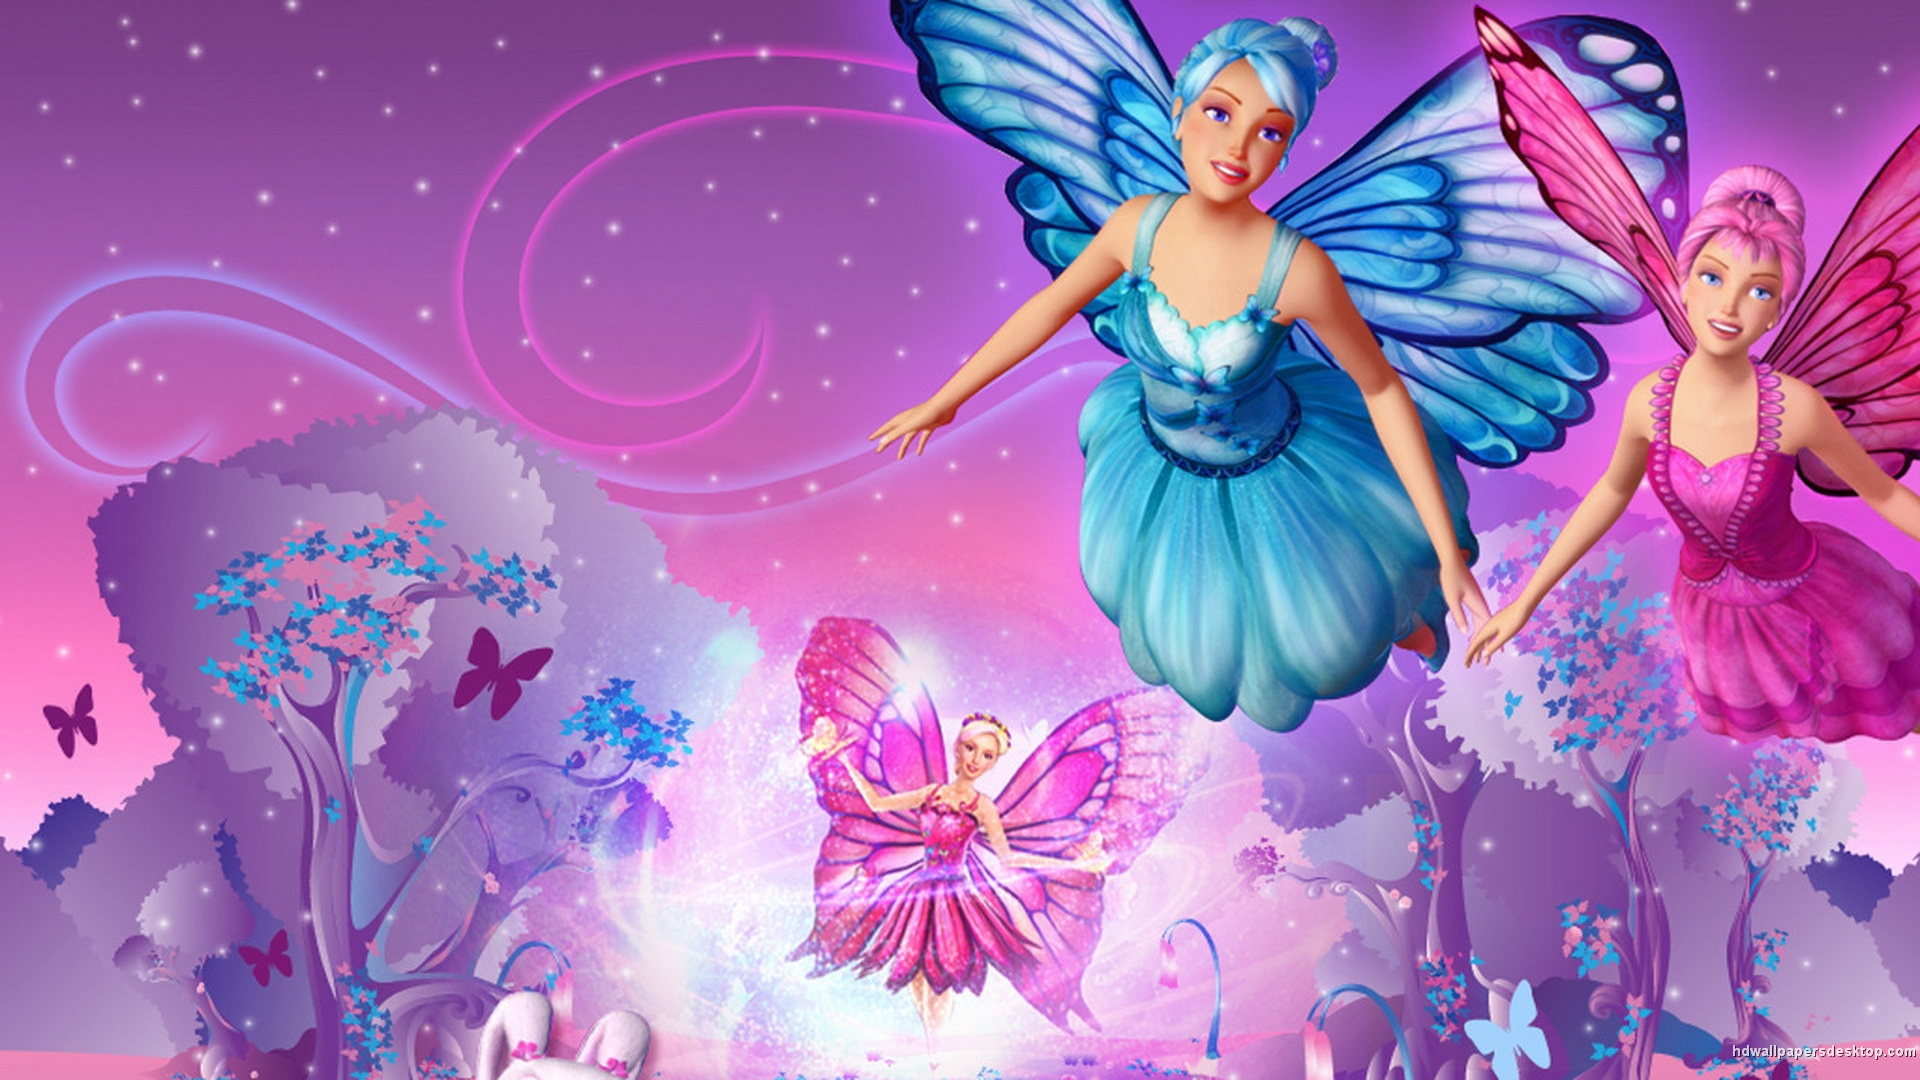 Barbie Wallpaper Pictures Backgrounds Images 1920x1080 1920x1080